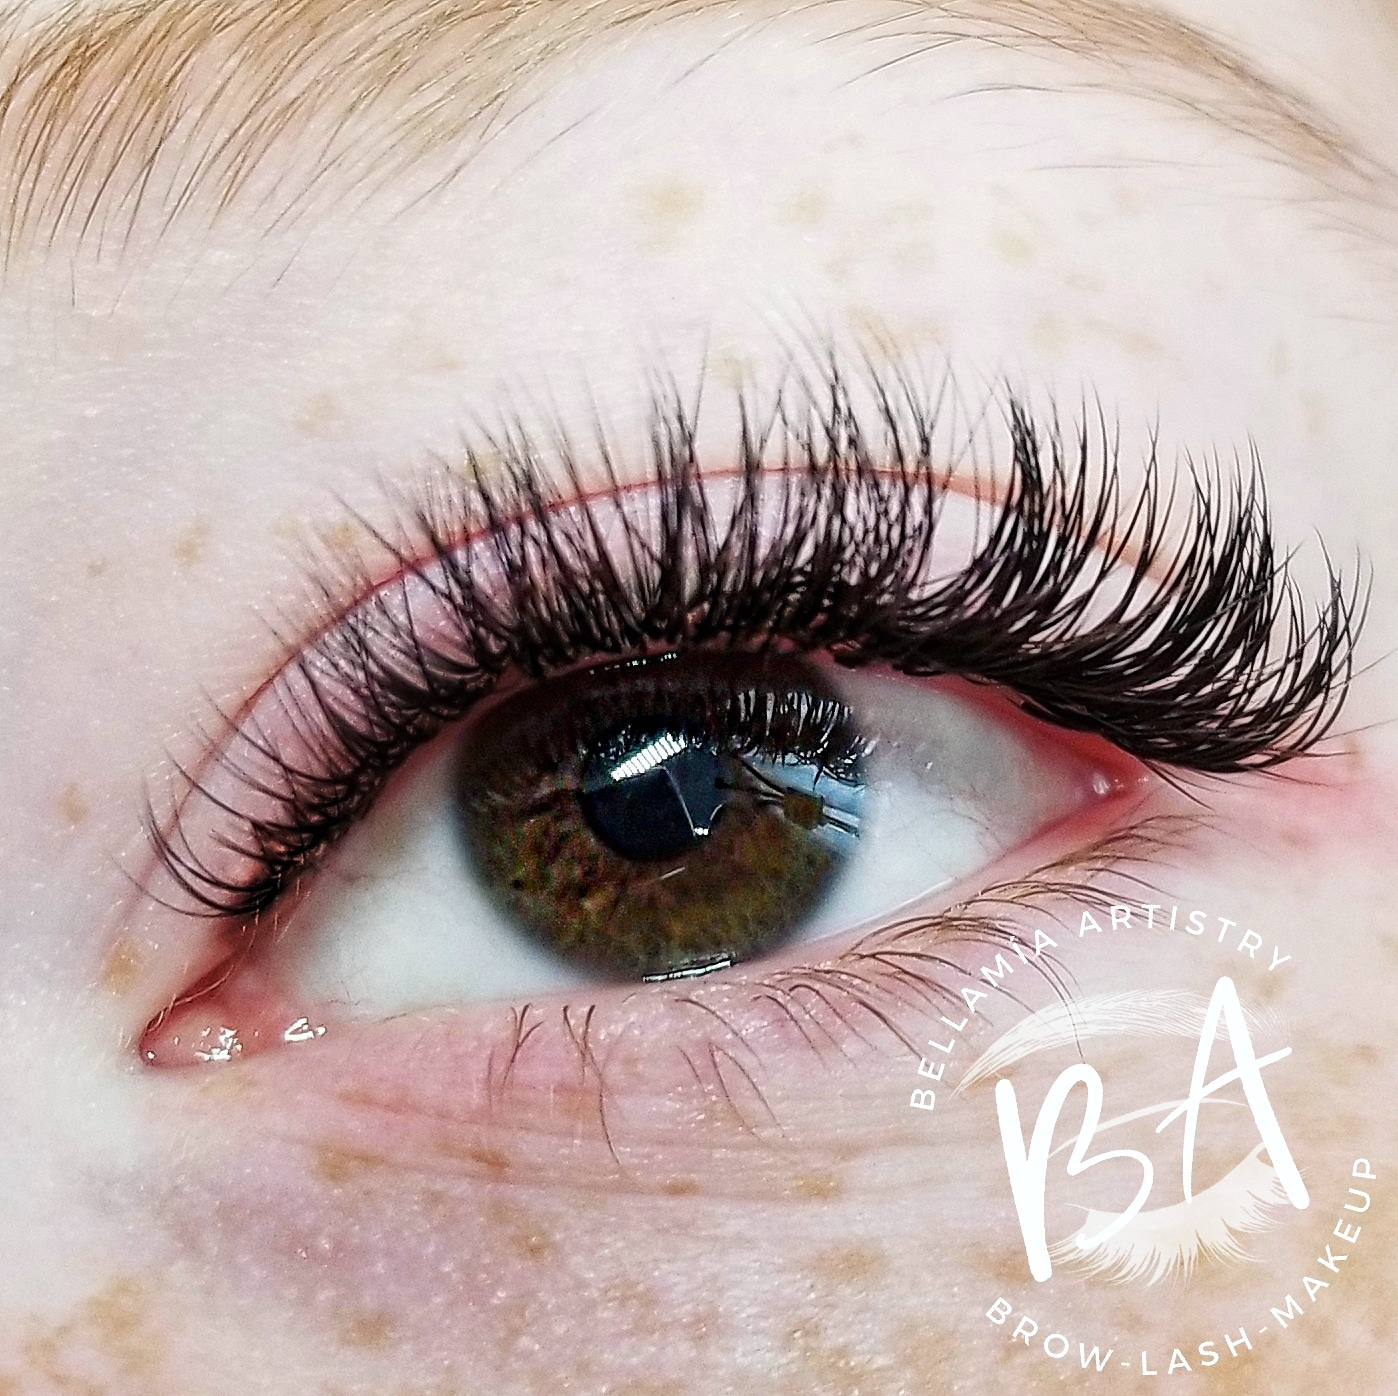 Hybrid Lashes - Hybrid Lash Full Set - $170Hybrid Fill (60 minutes) - $65Hybrid fill (85 minutes) - $90Ombre Hybrid Full Set - $185Hybrid Lashing is the blending of both the Classic and Volume eyelash extensions. Volume fans and Classic eyelash extensions are intermixed to create a fuller lash line. This gives a slightly fluffier appearance to the lashes than straight Classic eyelash extensions.